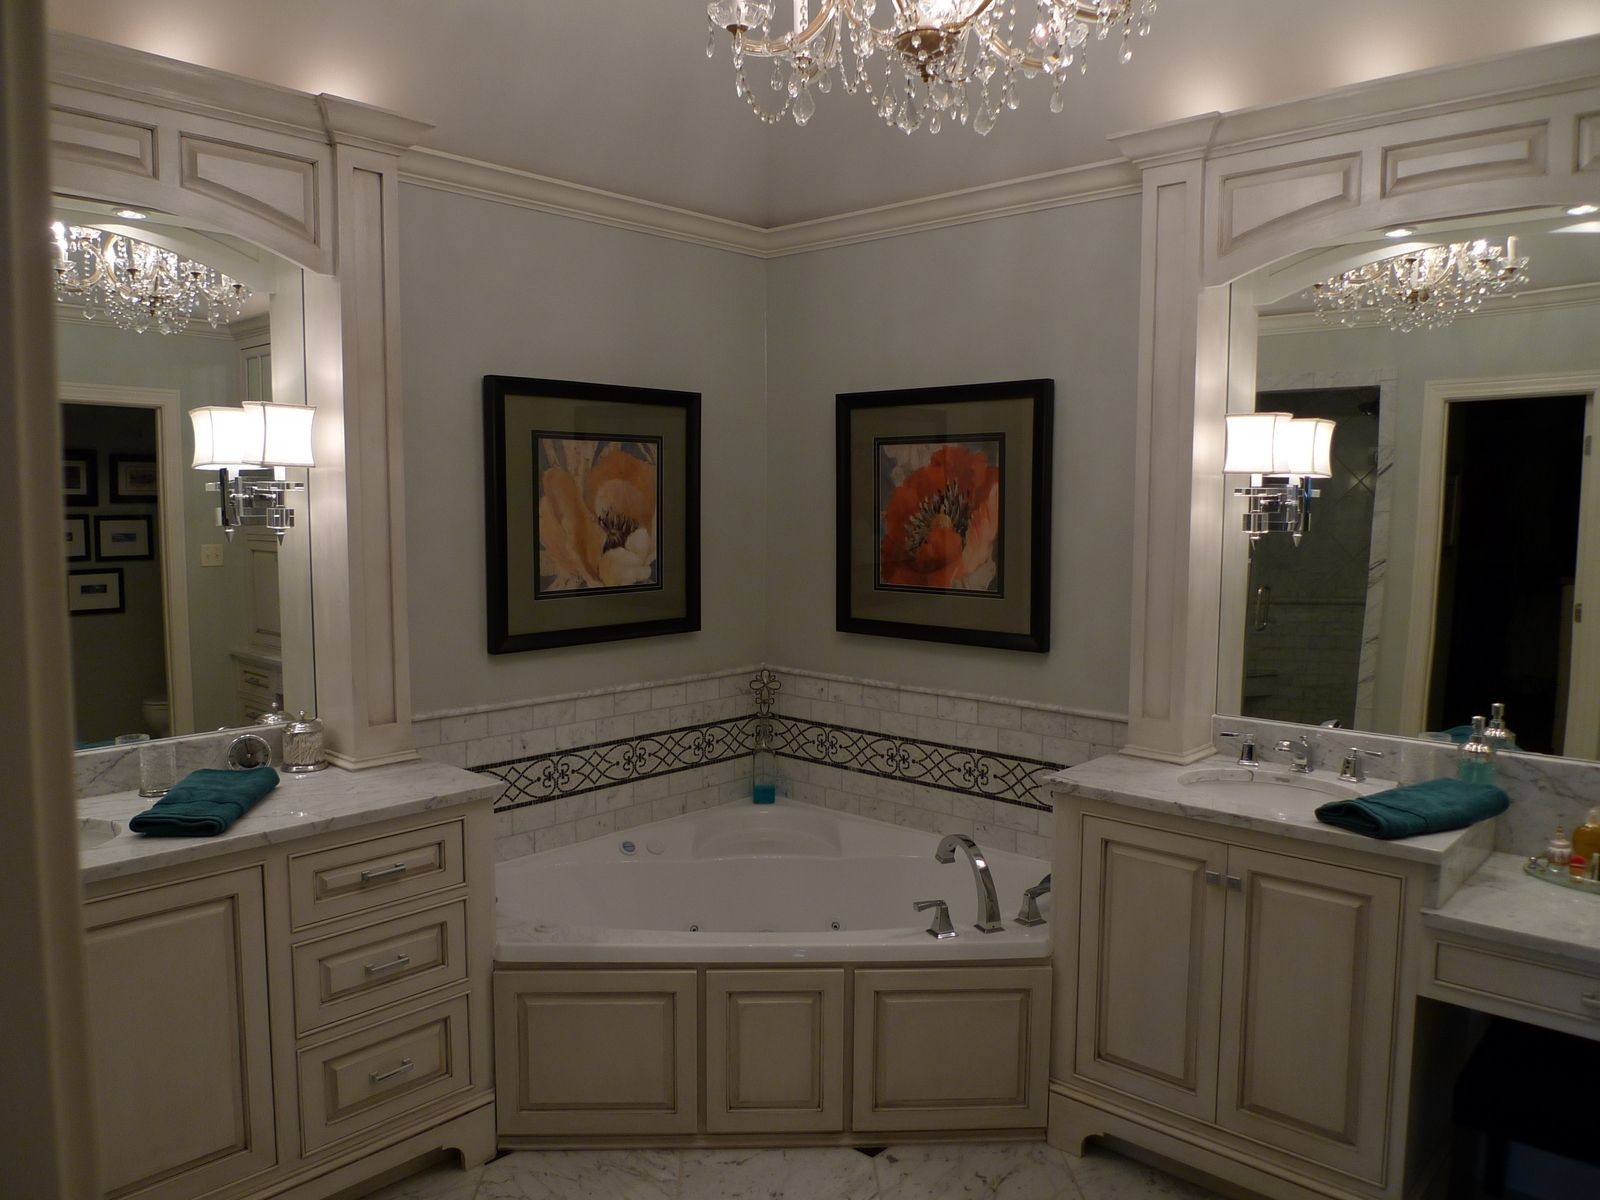 Custom Made Cabinets Hand Made Bathroom Cabinets By Cristofir Bradley Cabinetry